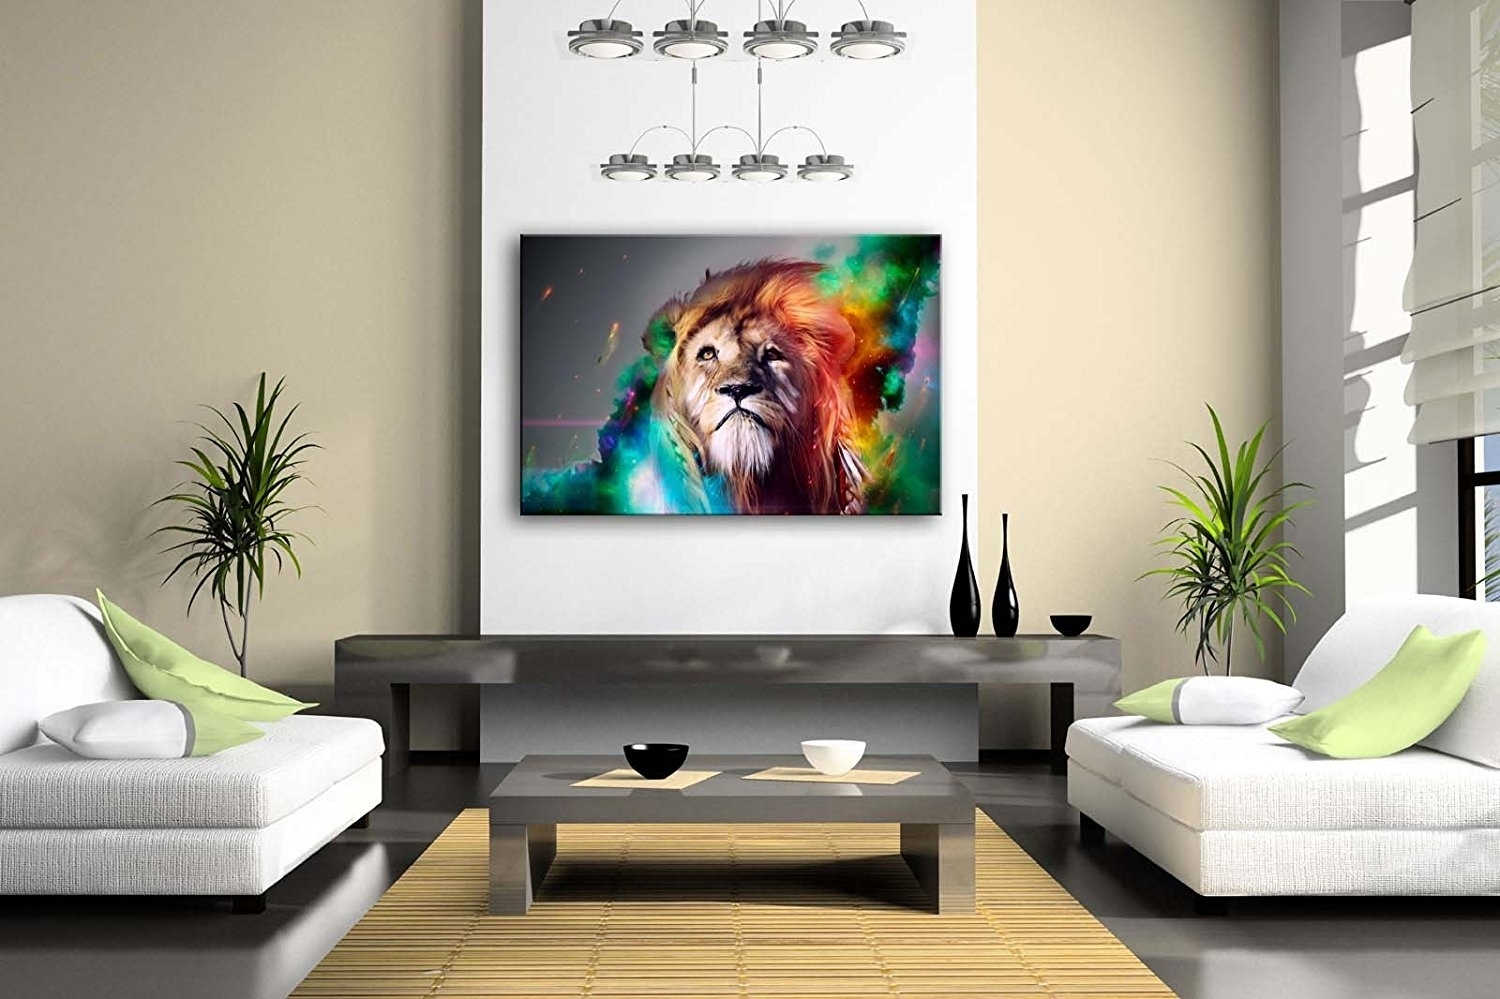 New Wall Art Paintings For Living Room | Wall Decorations Within Current Living Room Painting Wall Art (View 13 of 20)